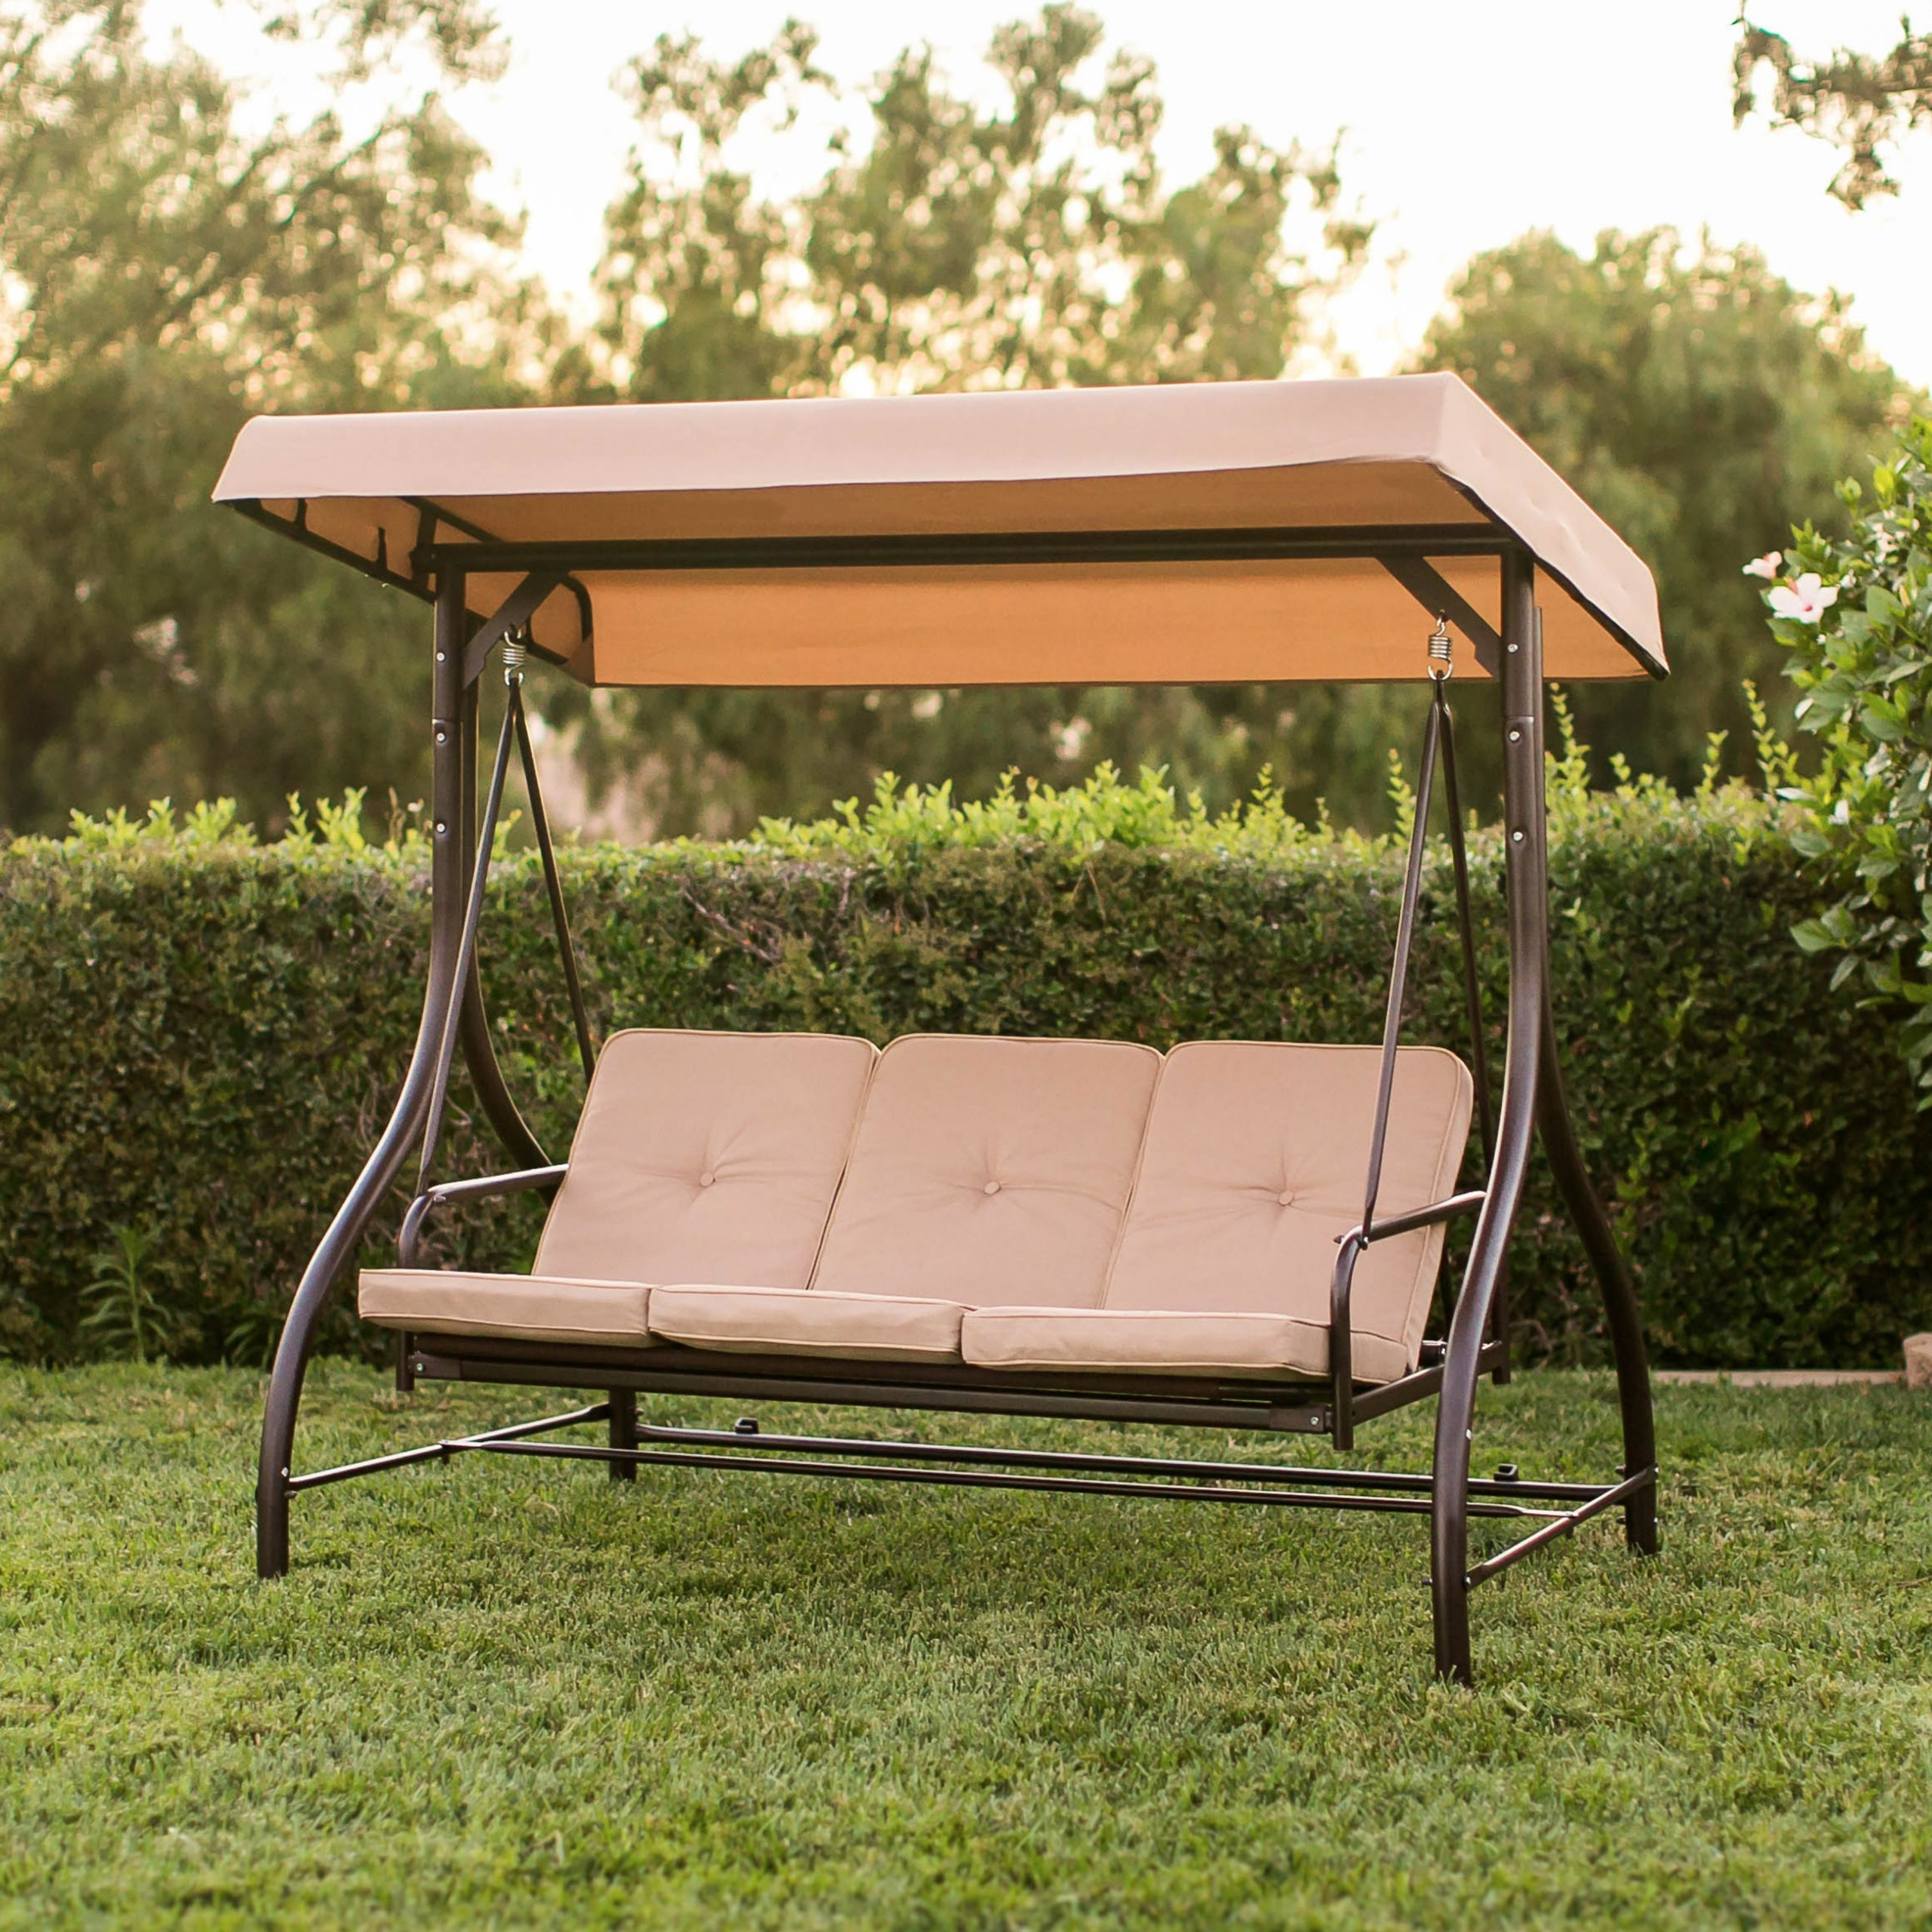 Patio Seating Porch Swings Brown 3 Persons Outdoor Cushion Regarding 2019 Patio Glider Hammock Porch Swings (Gallery 20 of 25)